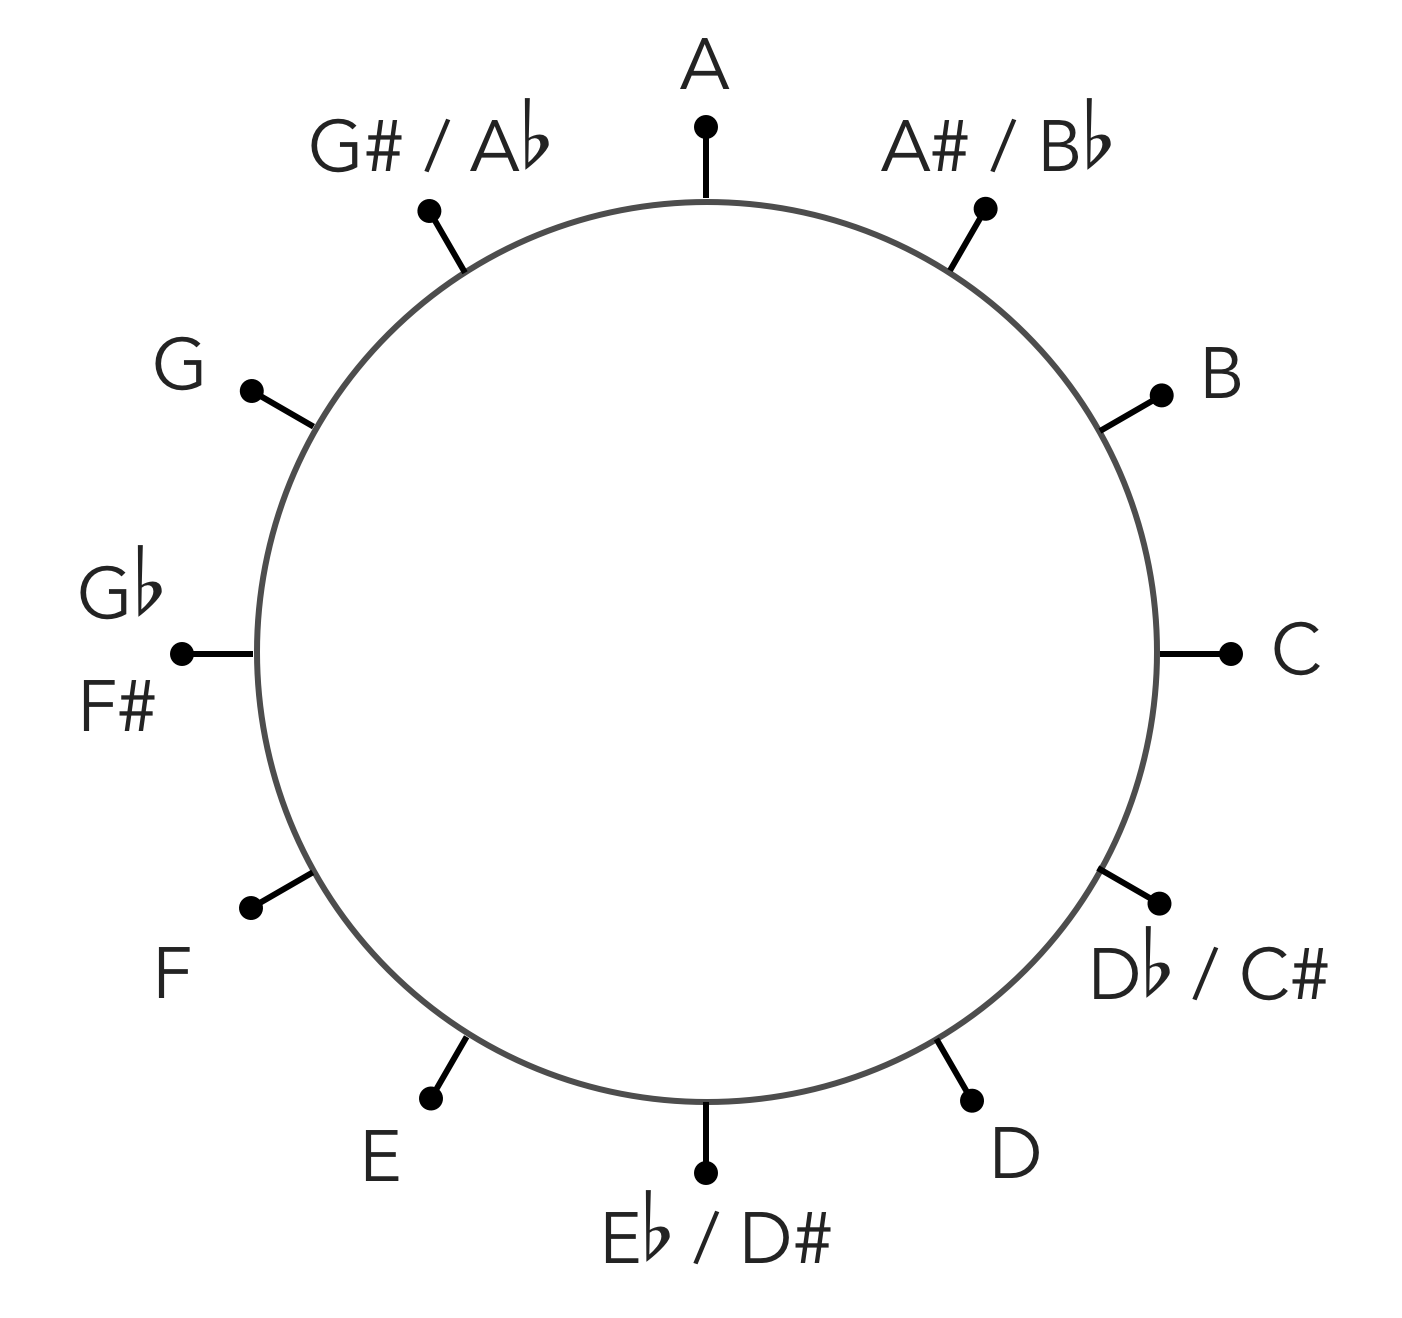 the note circle